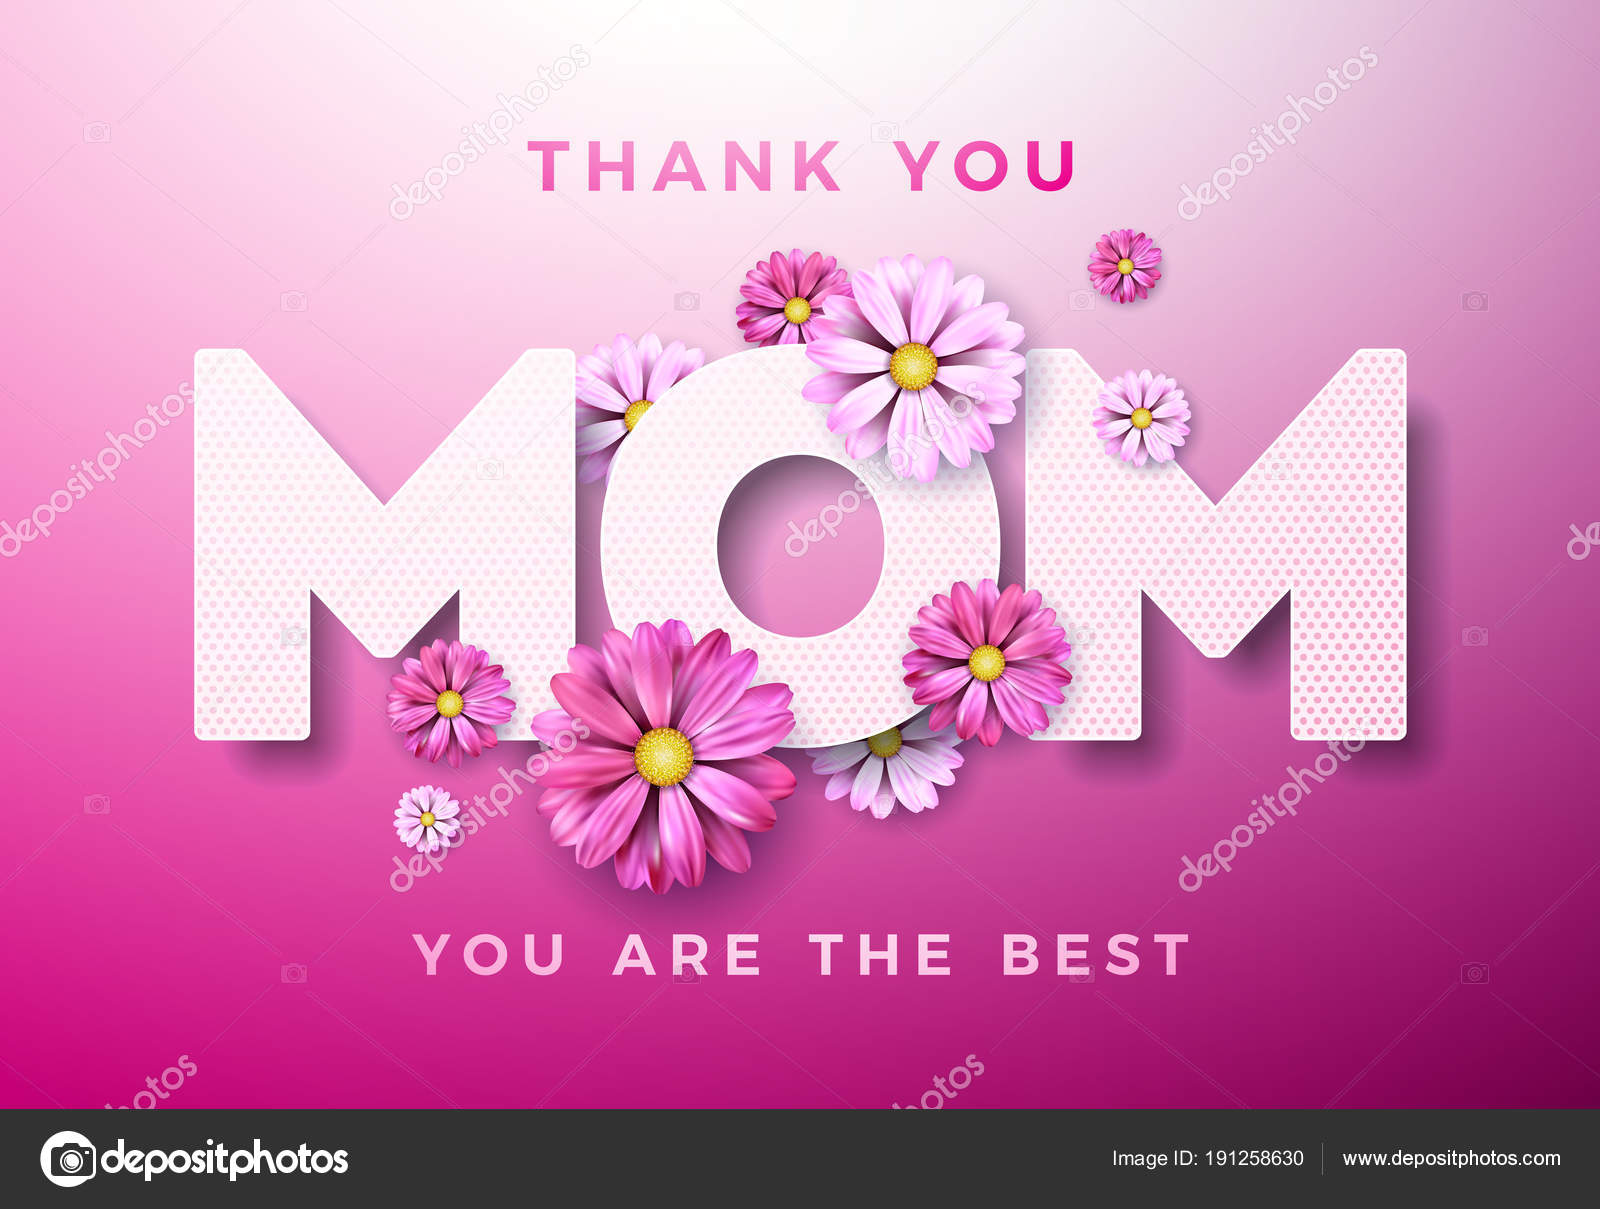 Happy Mothers Day Greeting Card Design With Flower And Thank You Mom